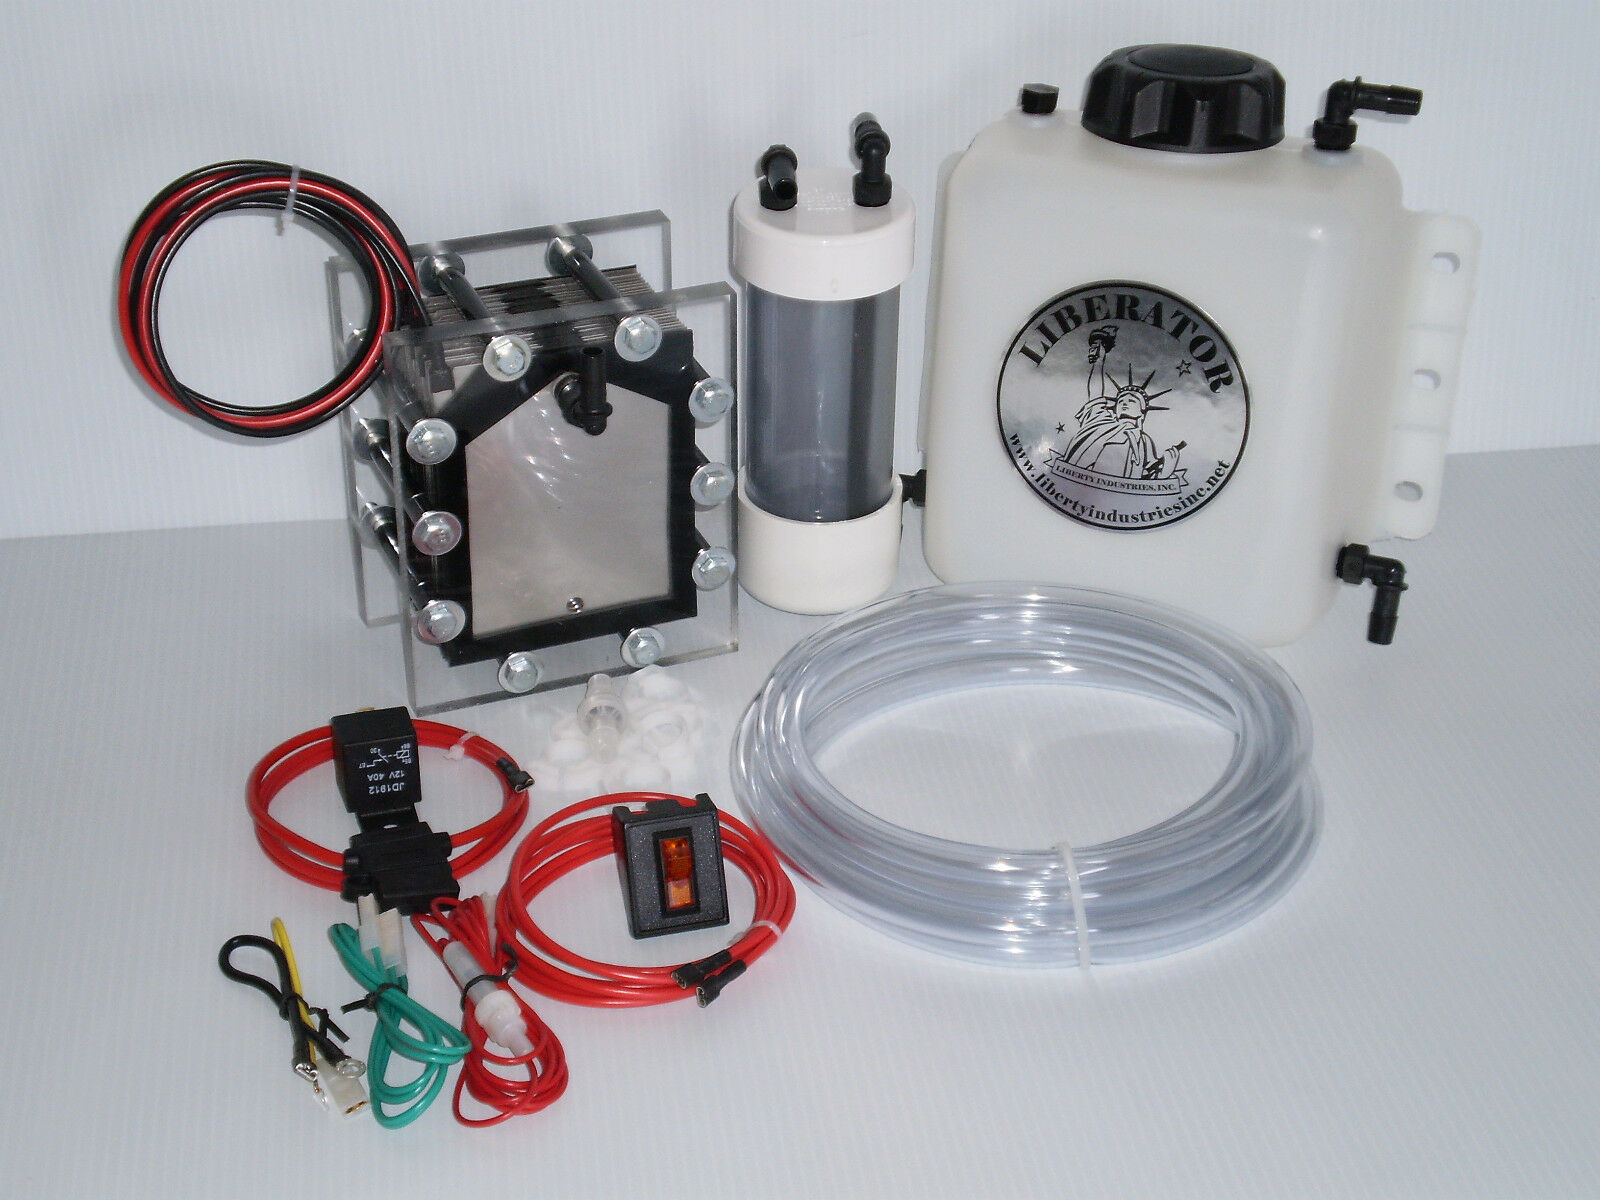 Hho Dry Cell >> 21 Plate Hho Hydrogen Generator Sealed Dry Cell Kit. Watch Video • CAD 220.08 - PicClick CA